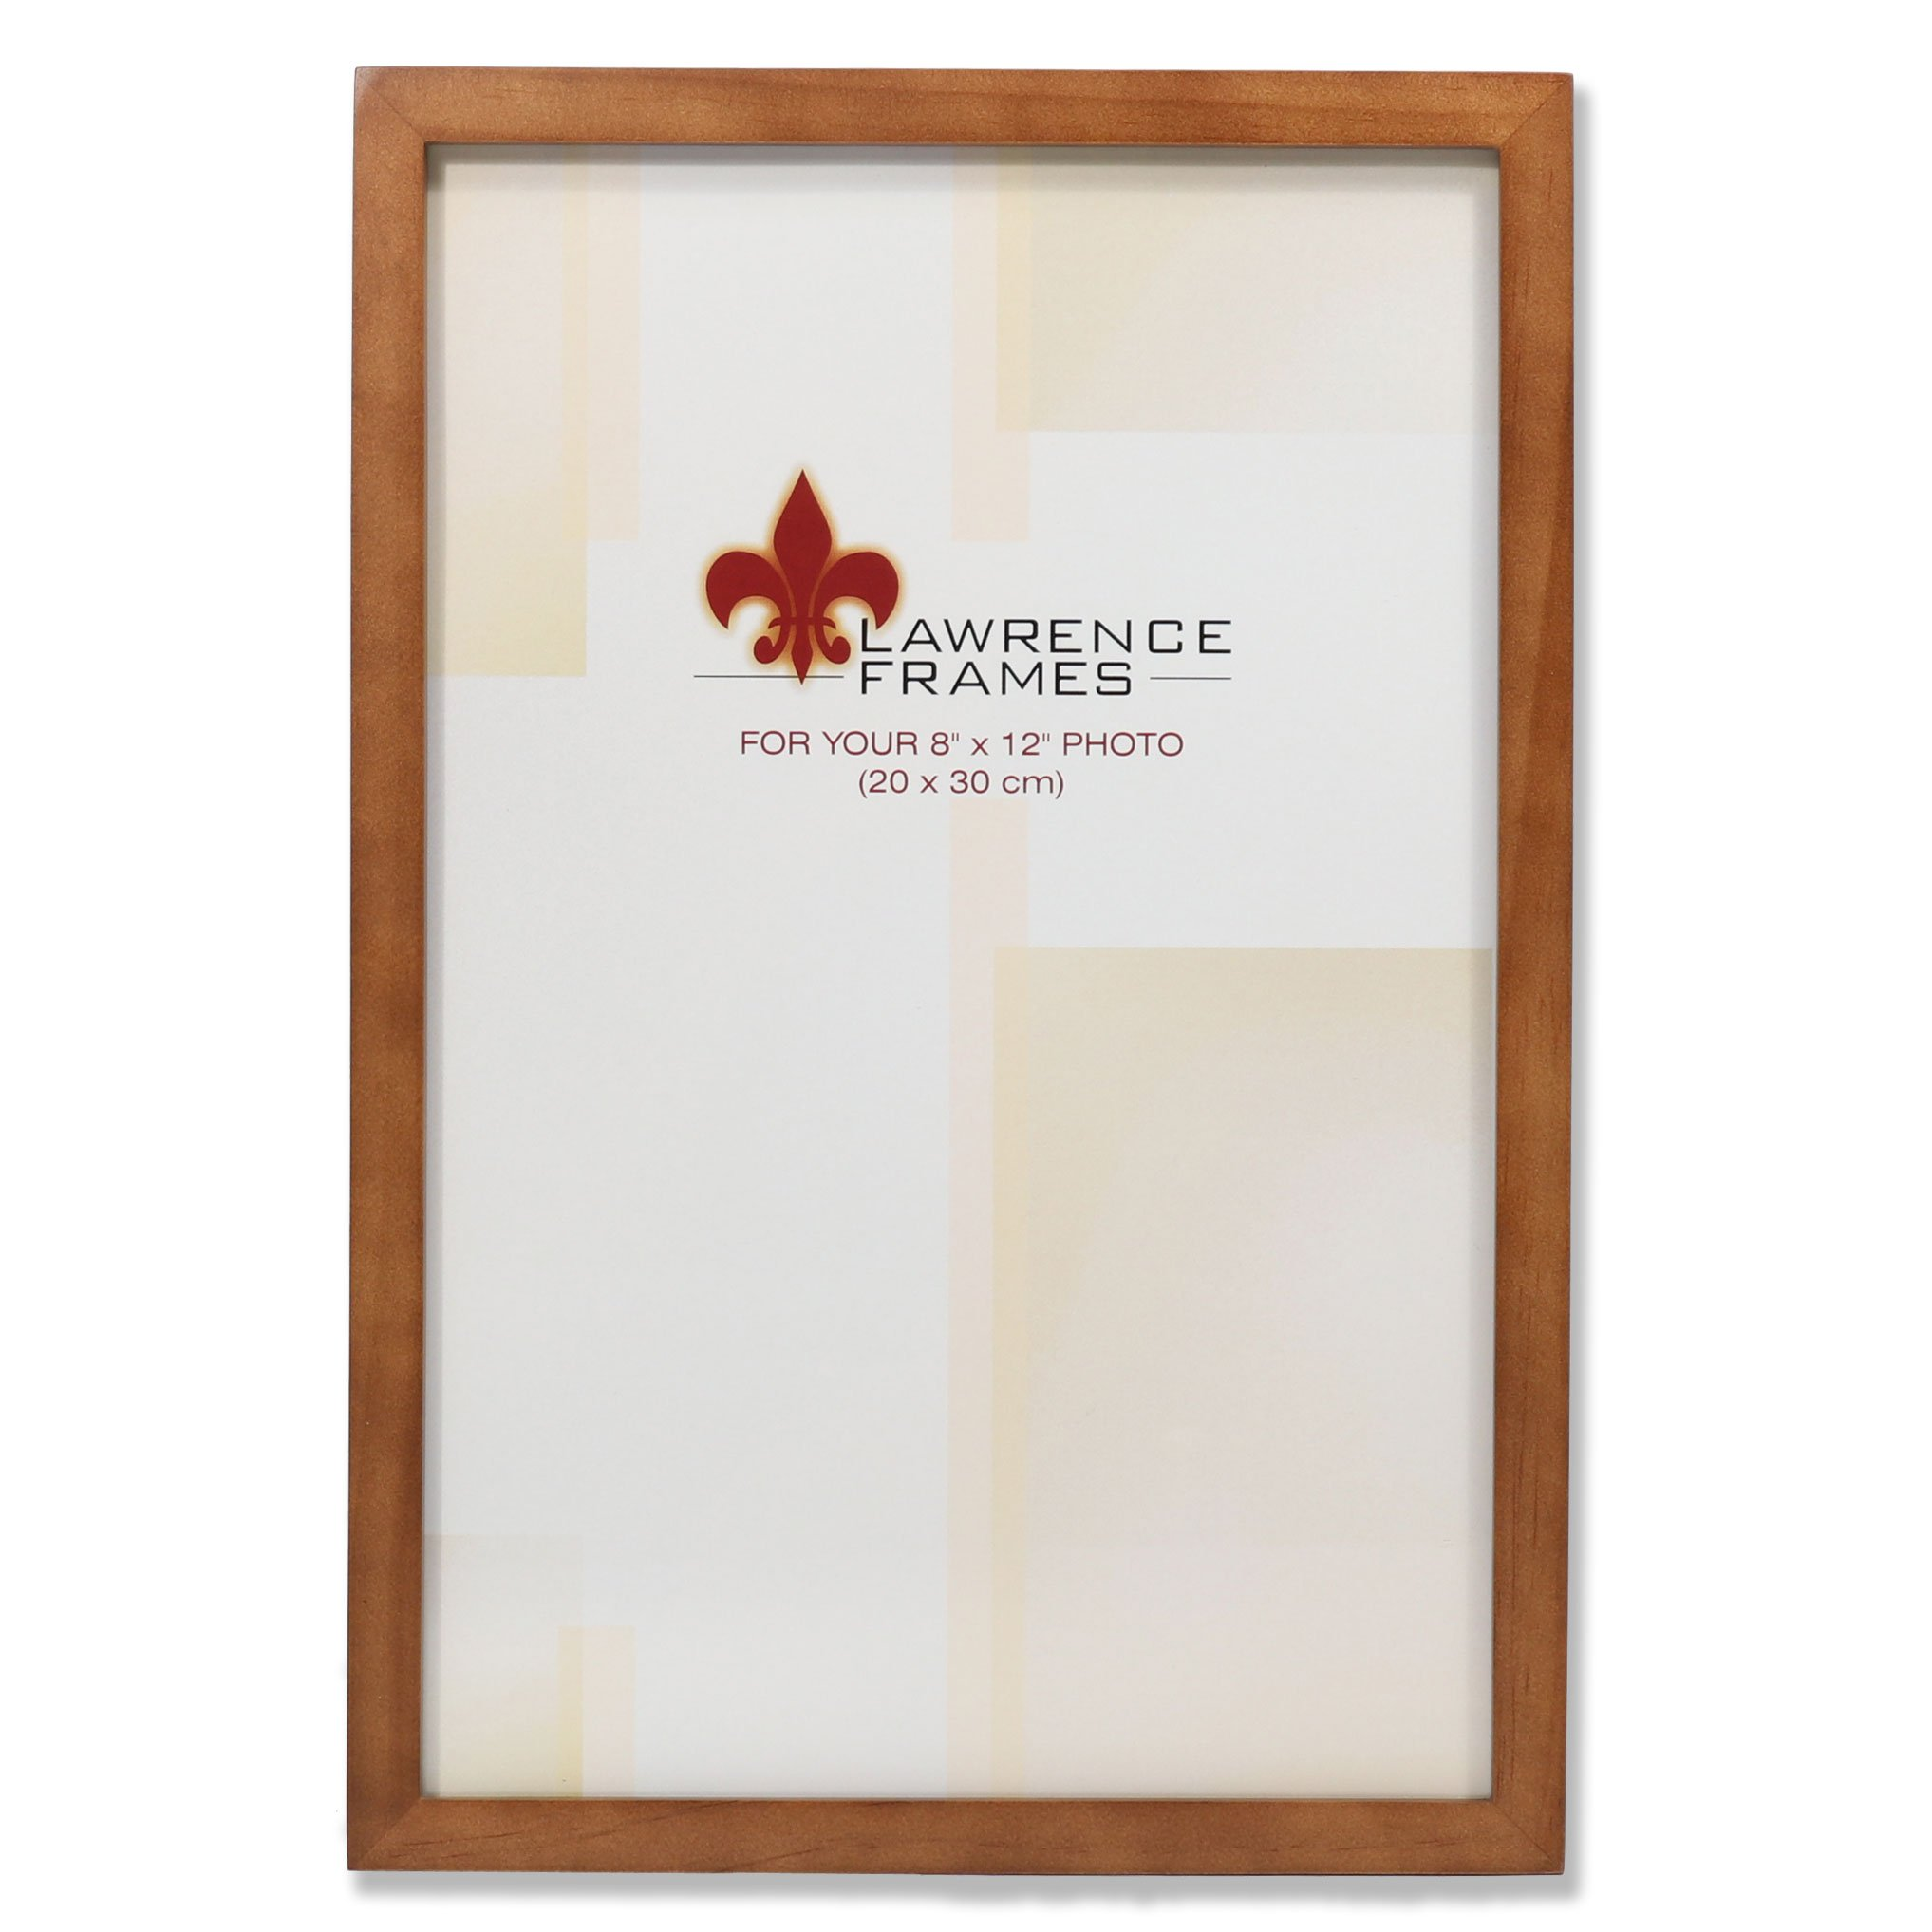 Lawrence Frames 766082 Nutmeg Wood Picture Frame, 8 by 12-Inch by Lawrence Frames